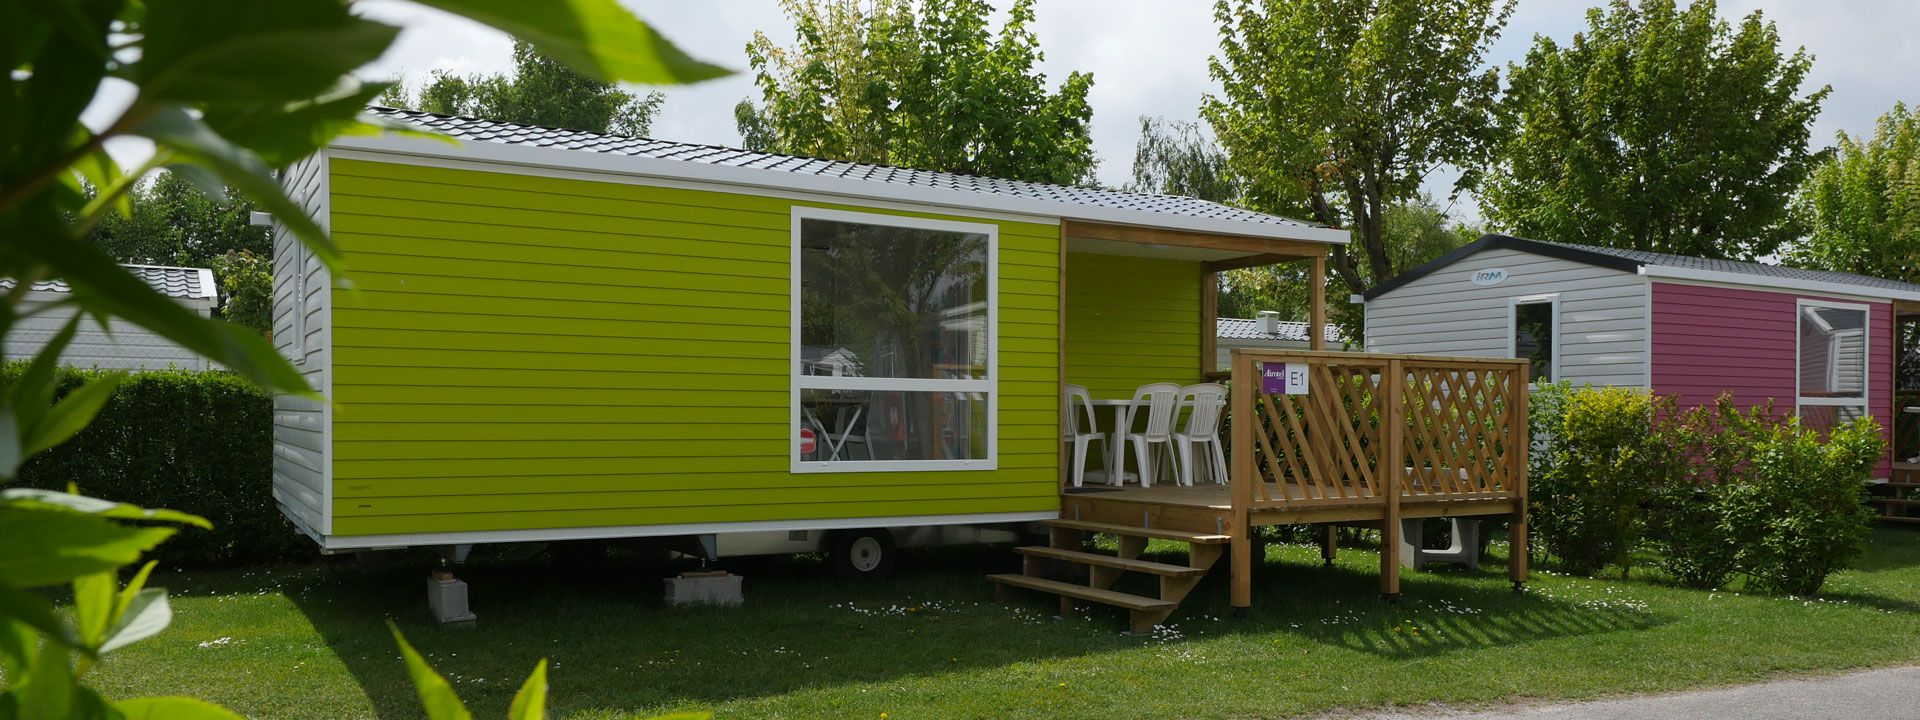 Mobil home occasion dans la somme vente mobil home occasion yvelines